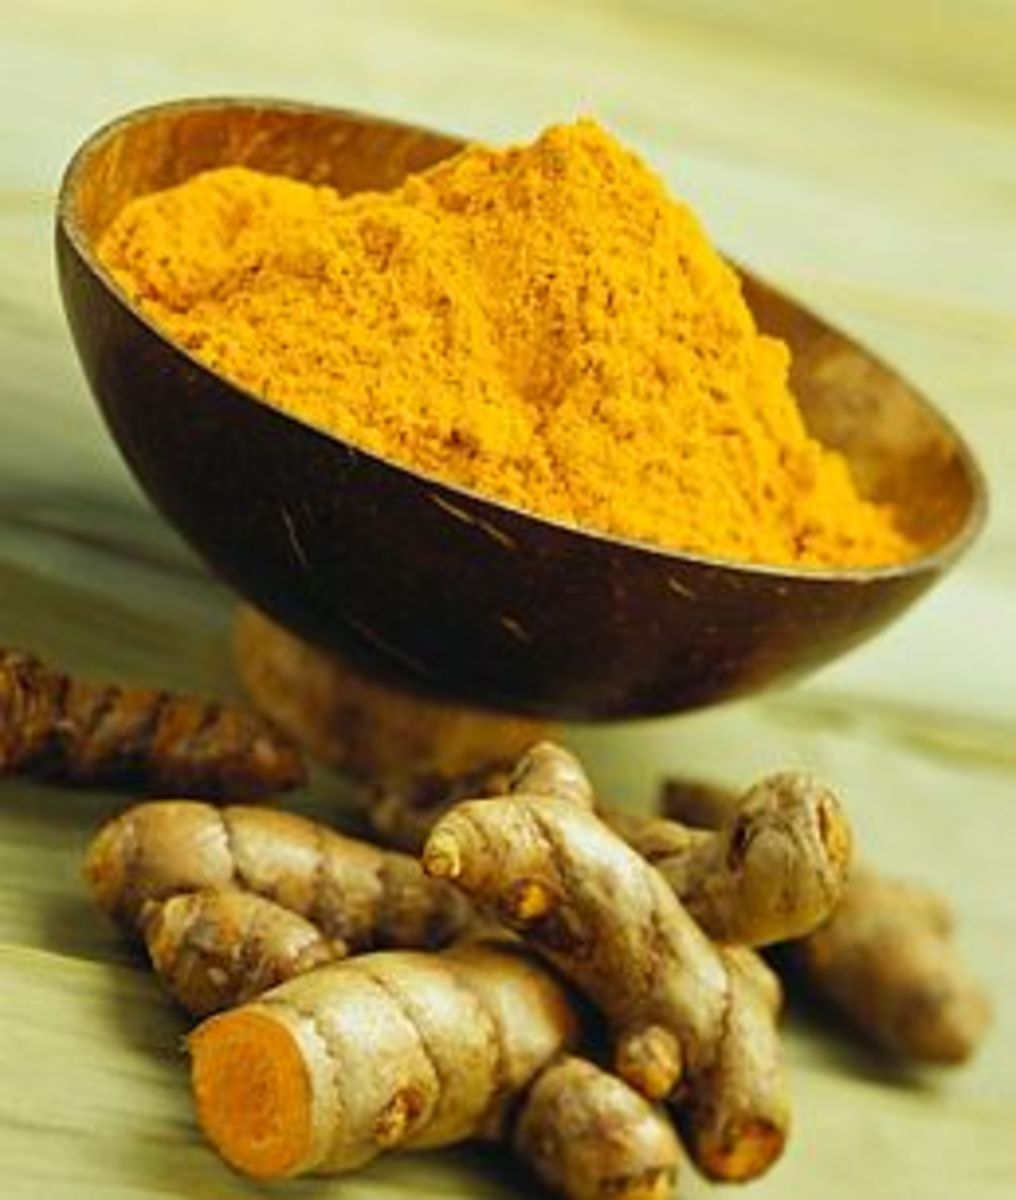 What is Haldi? - The Indian Spice Turmeric That Healed My Nose Ring and Other Health and Beauty Benefits